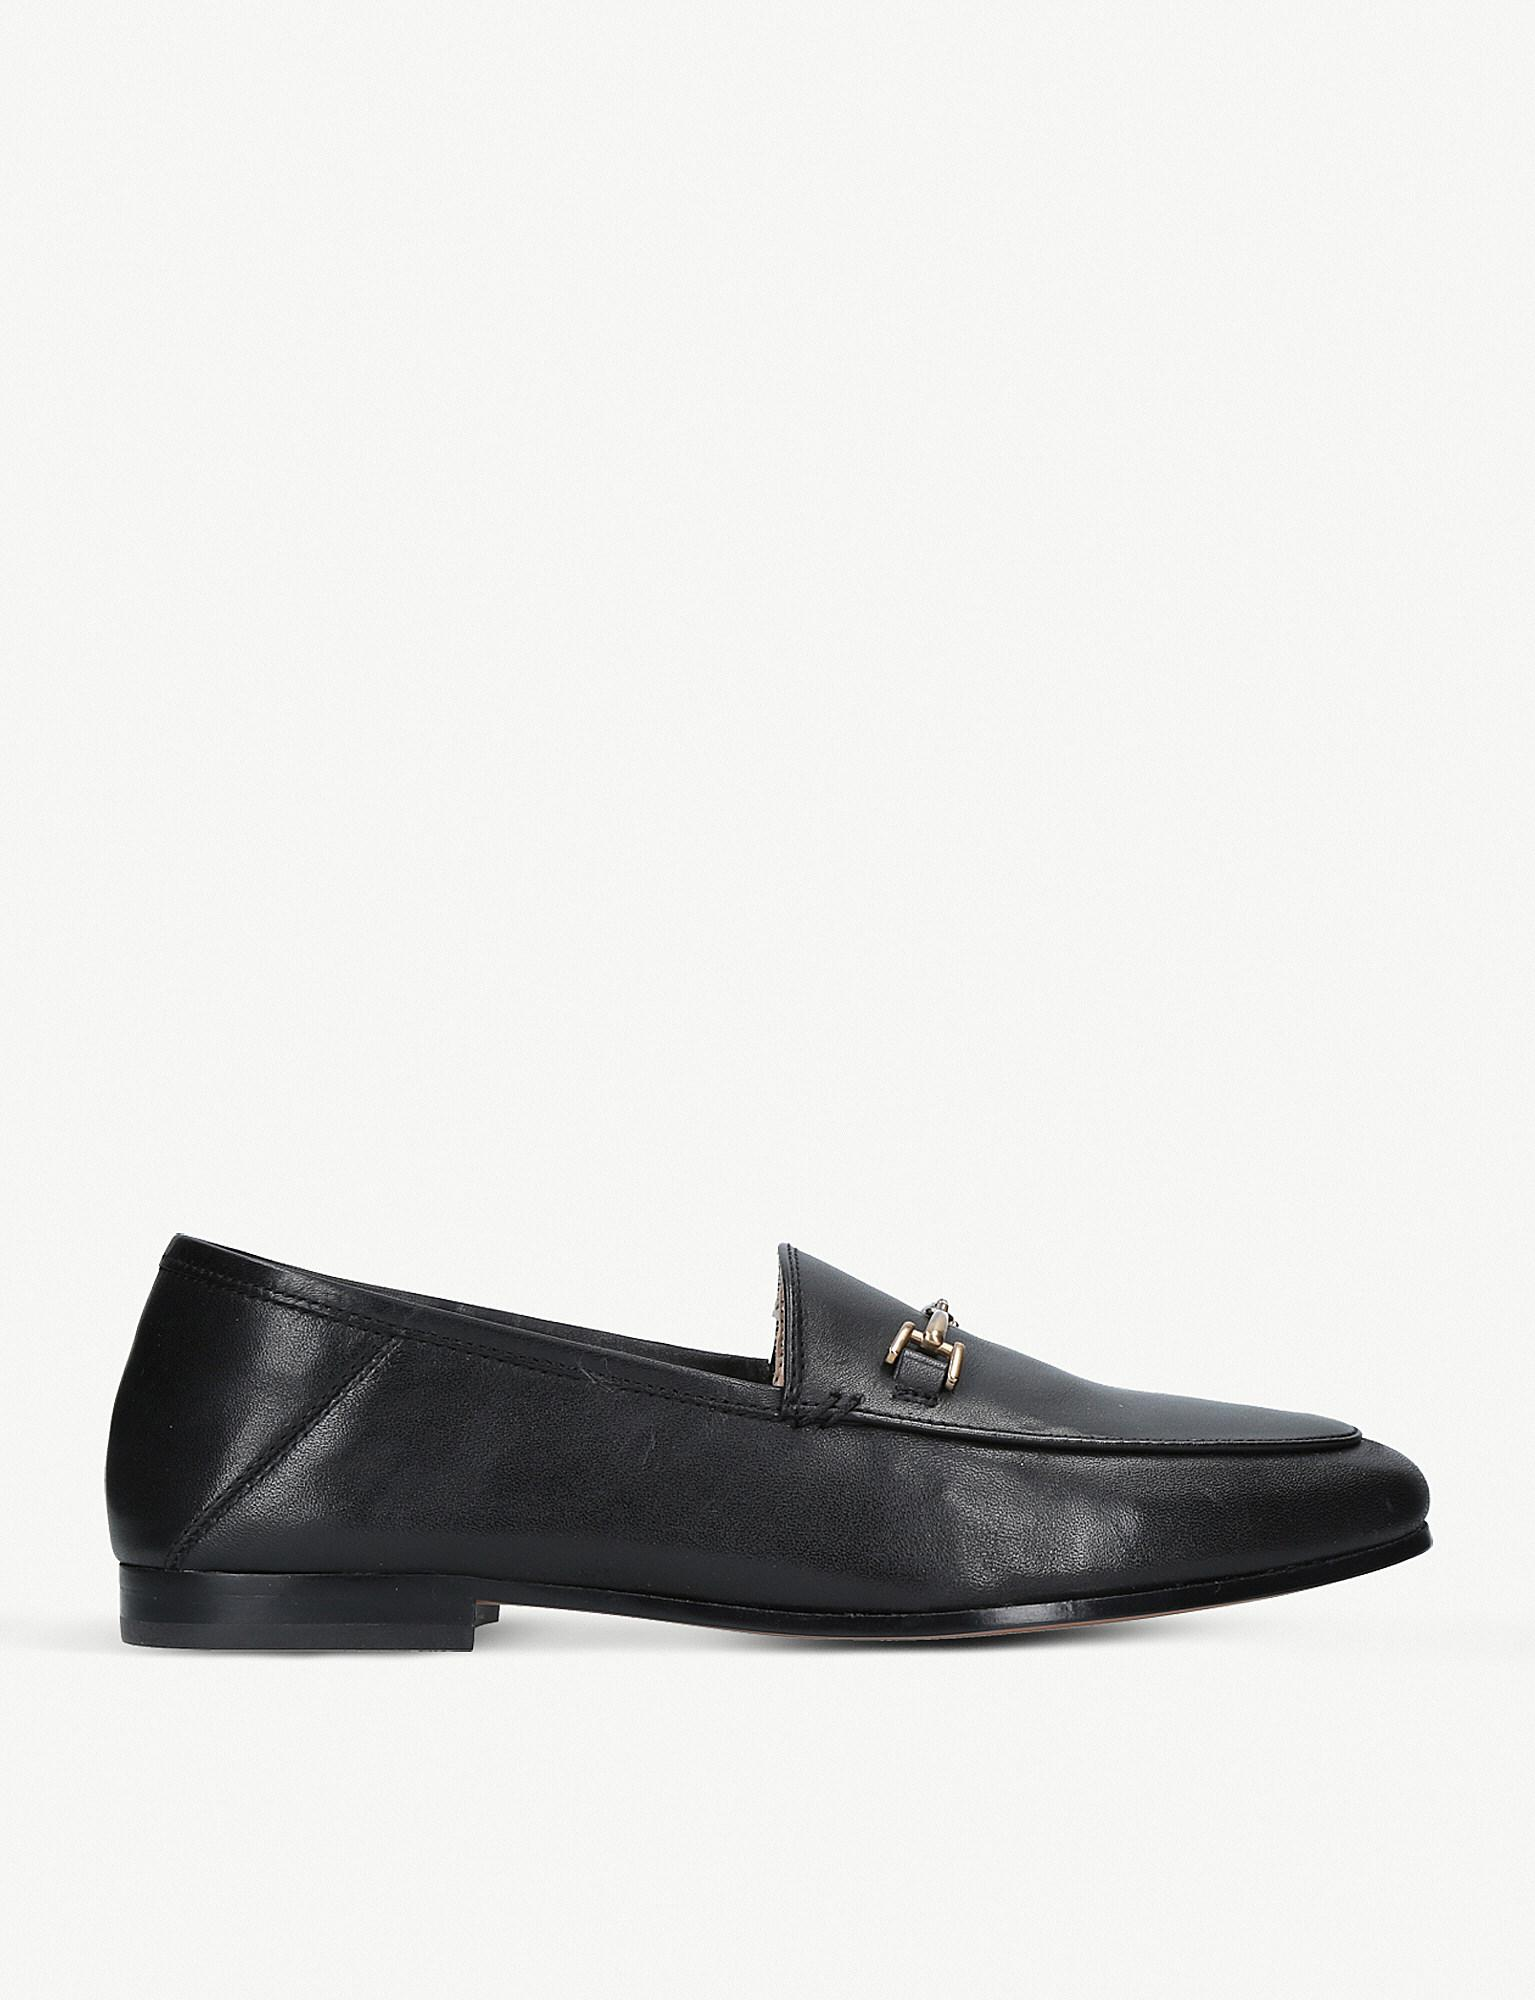 67510f98752 Lyst - Sam Edelman Loraine Leather Loafers in Black